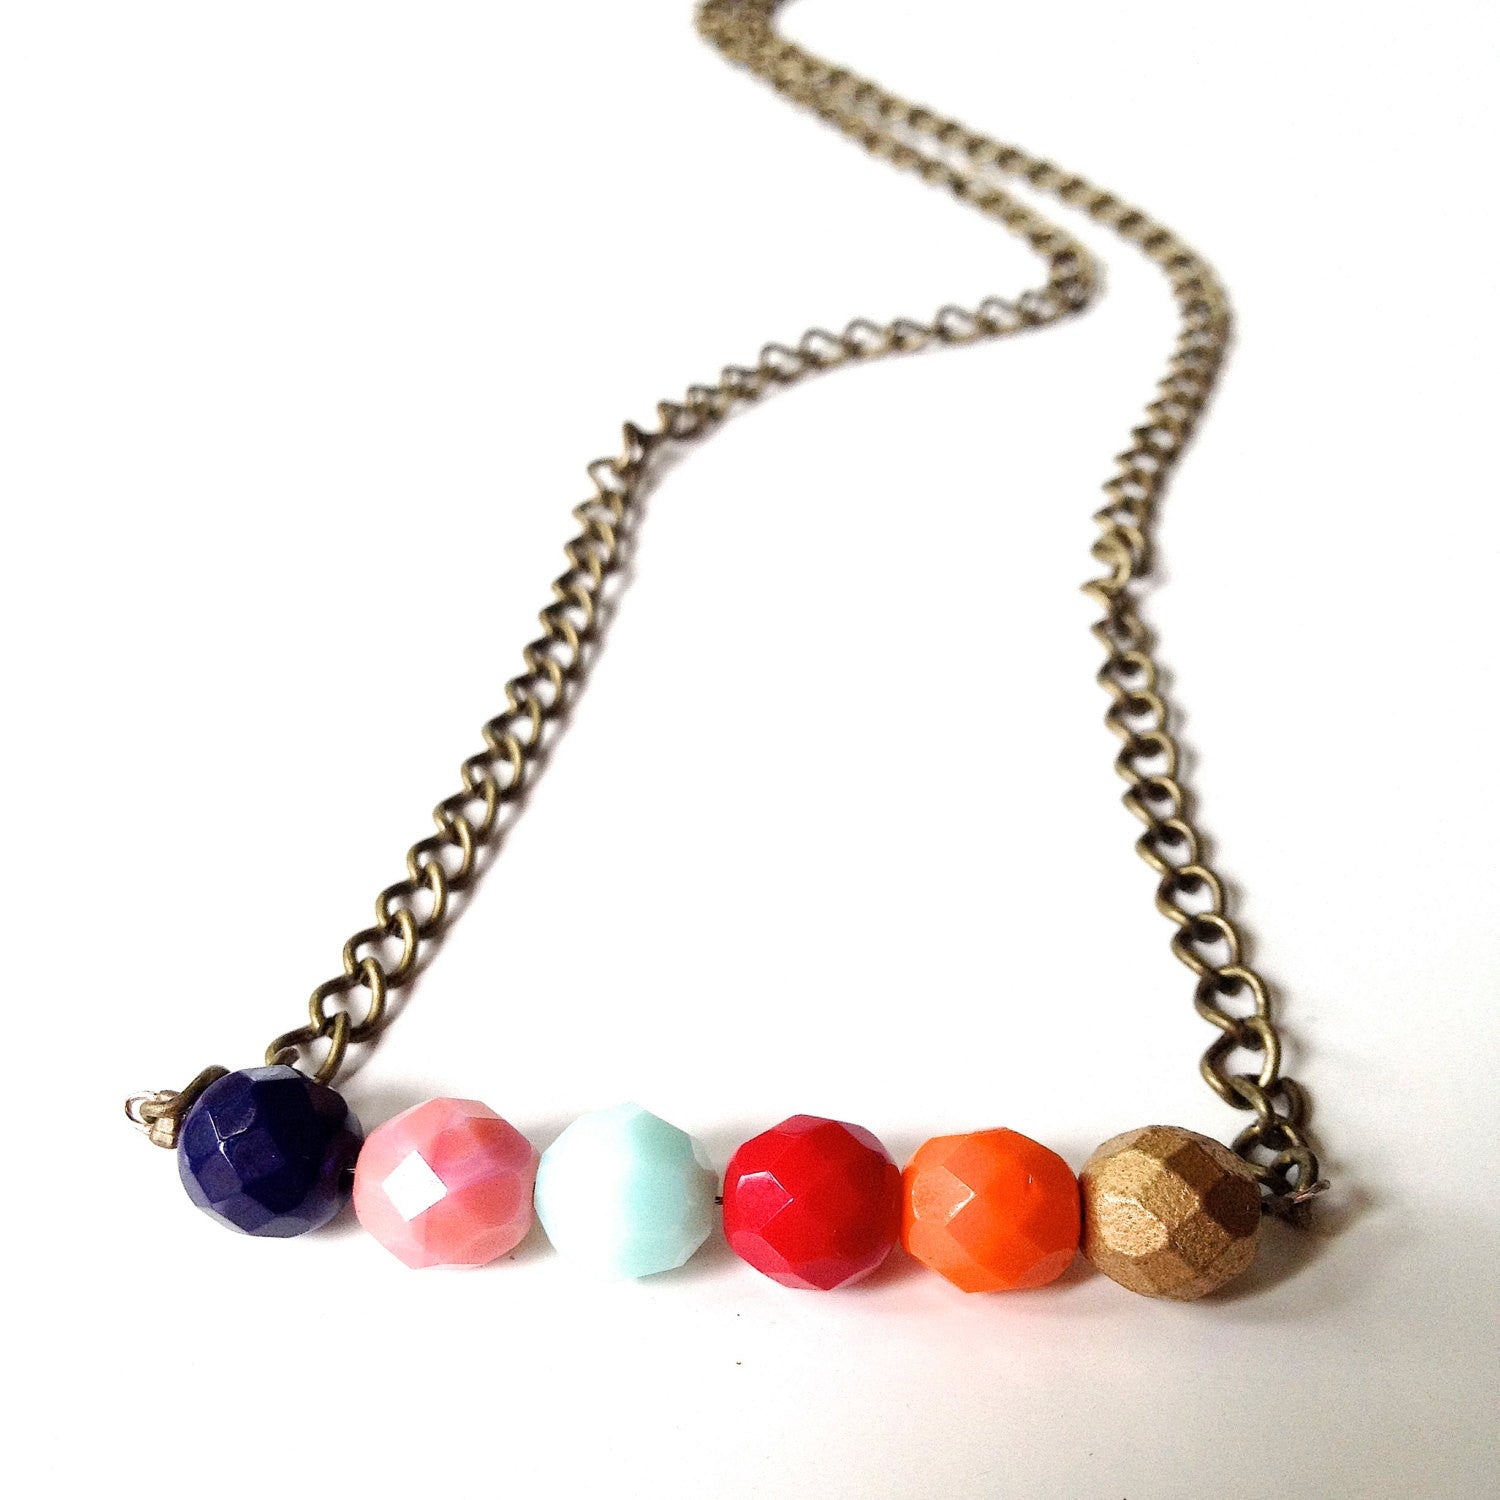 Simple Autumn Colors Czech Glass Beaded Necklace - Customizable